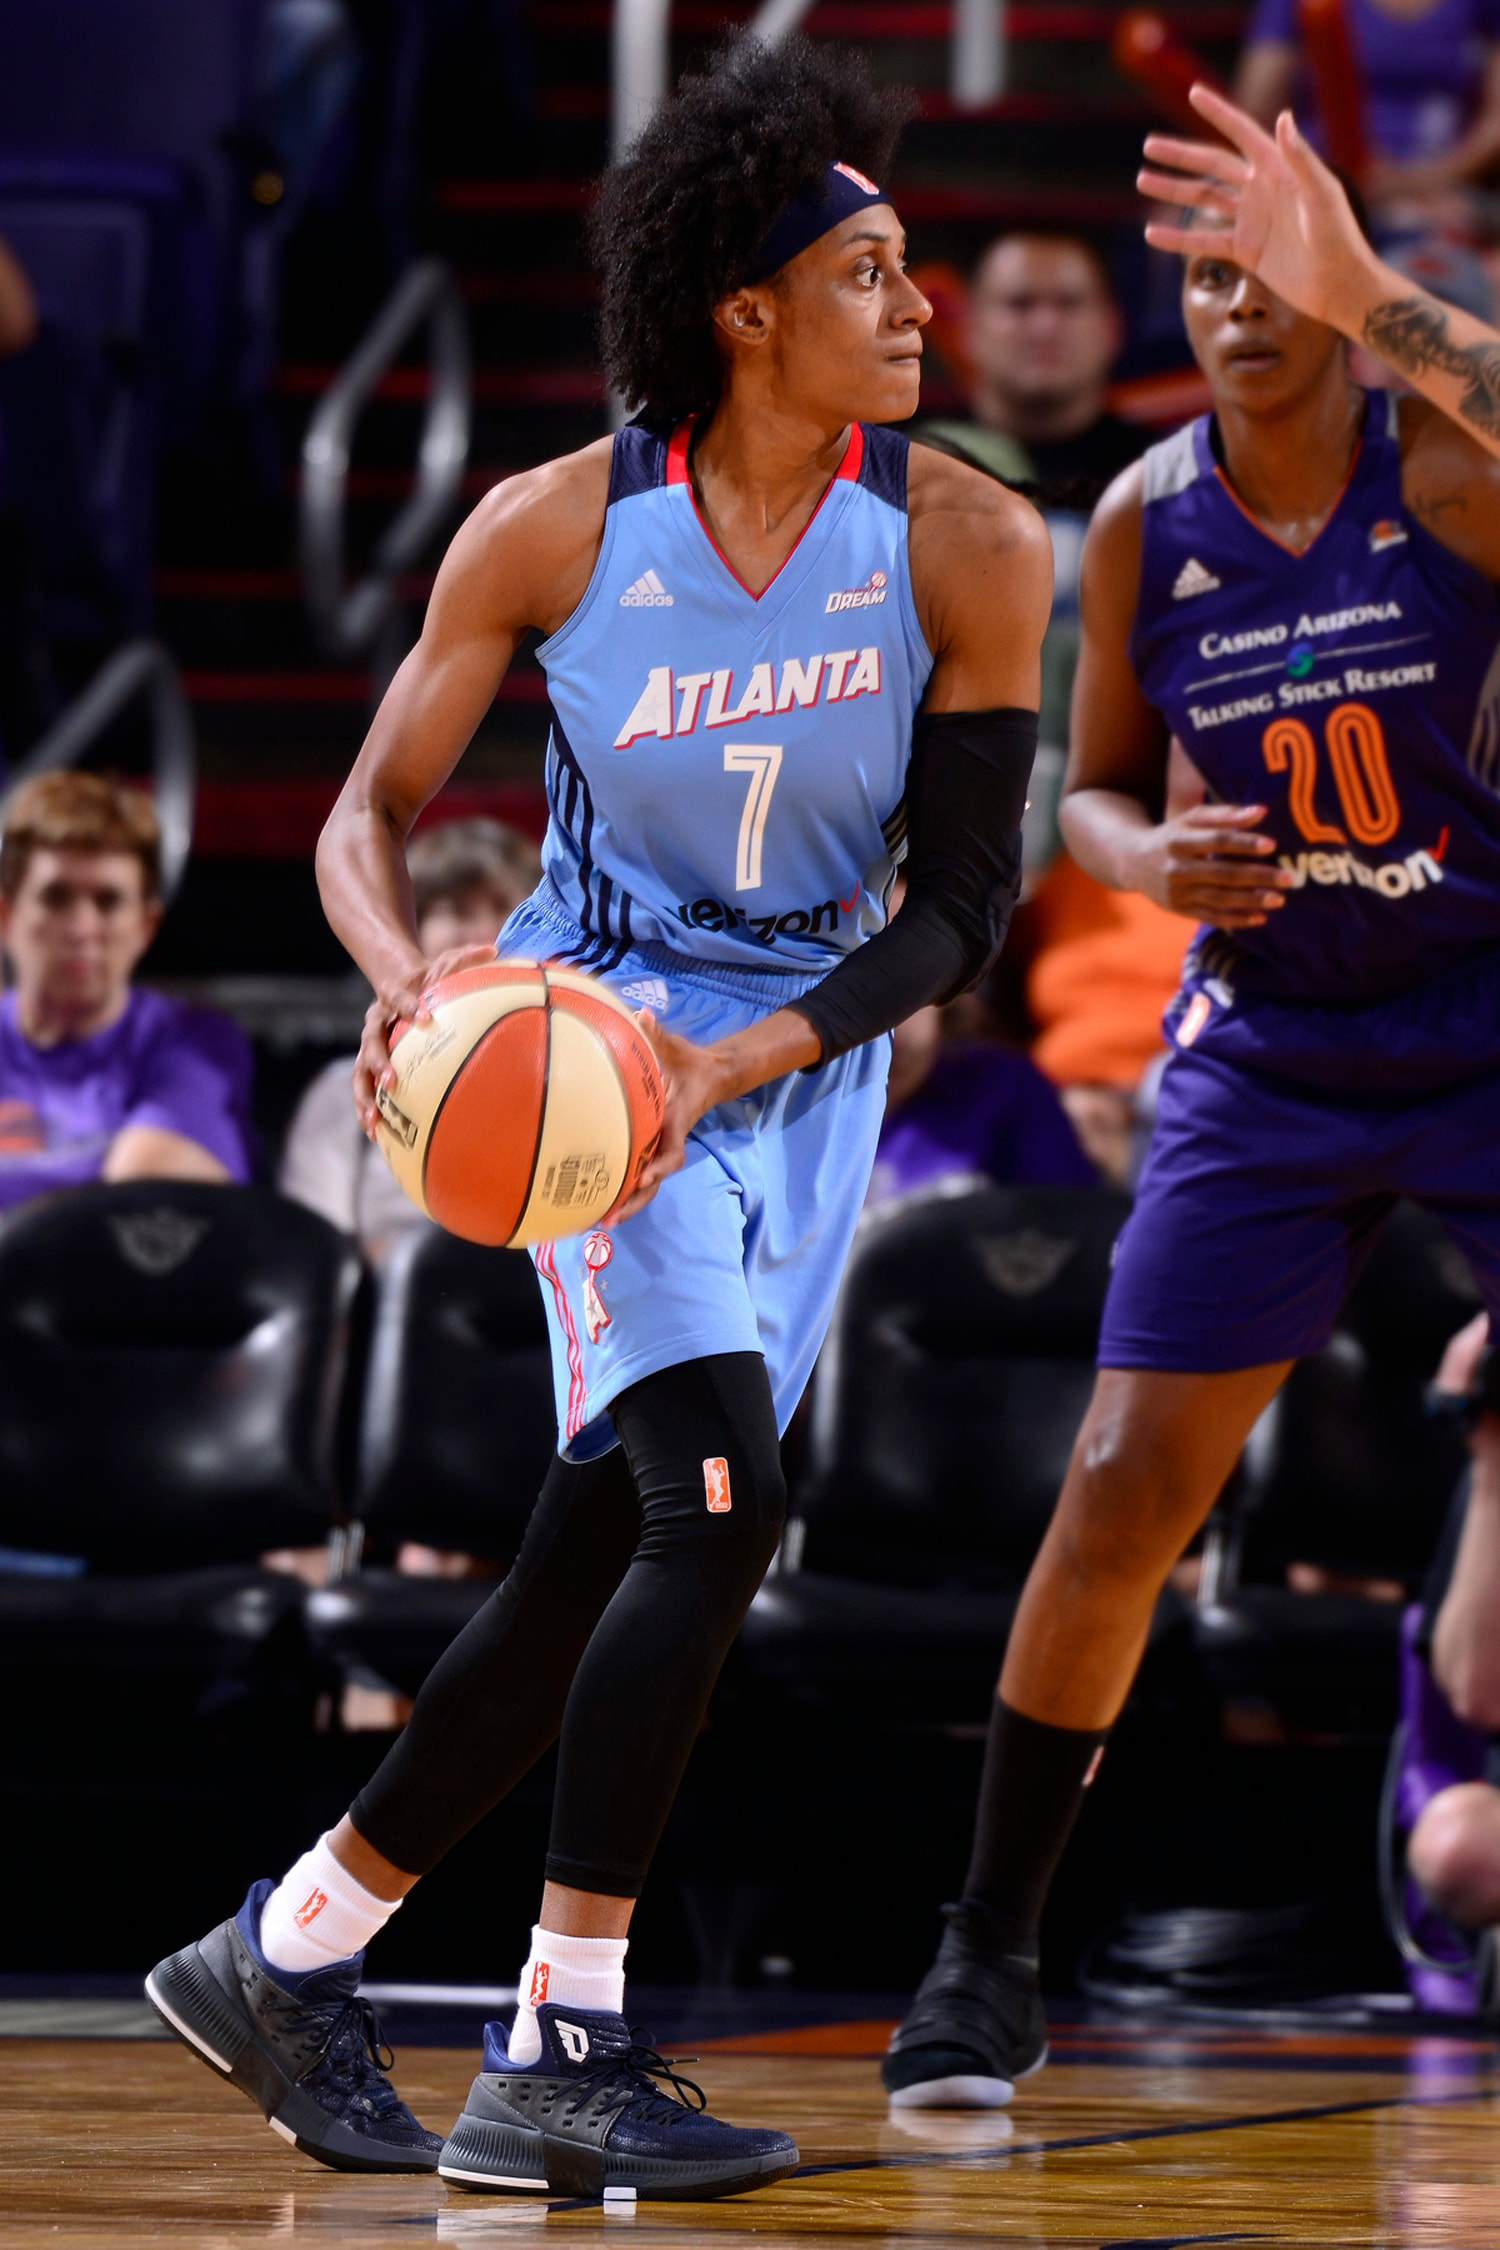 Phoenix Mercury vs Atlana Dream defense